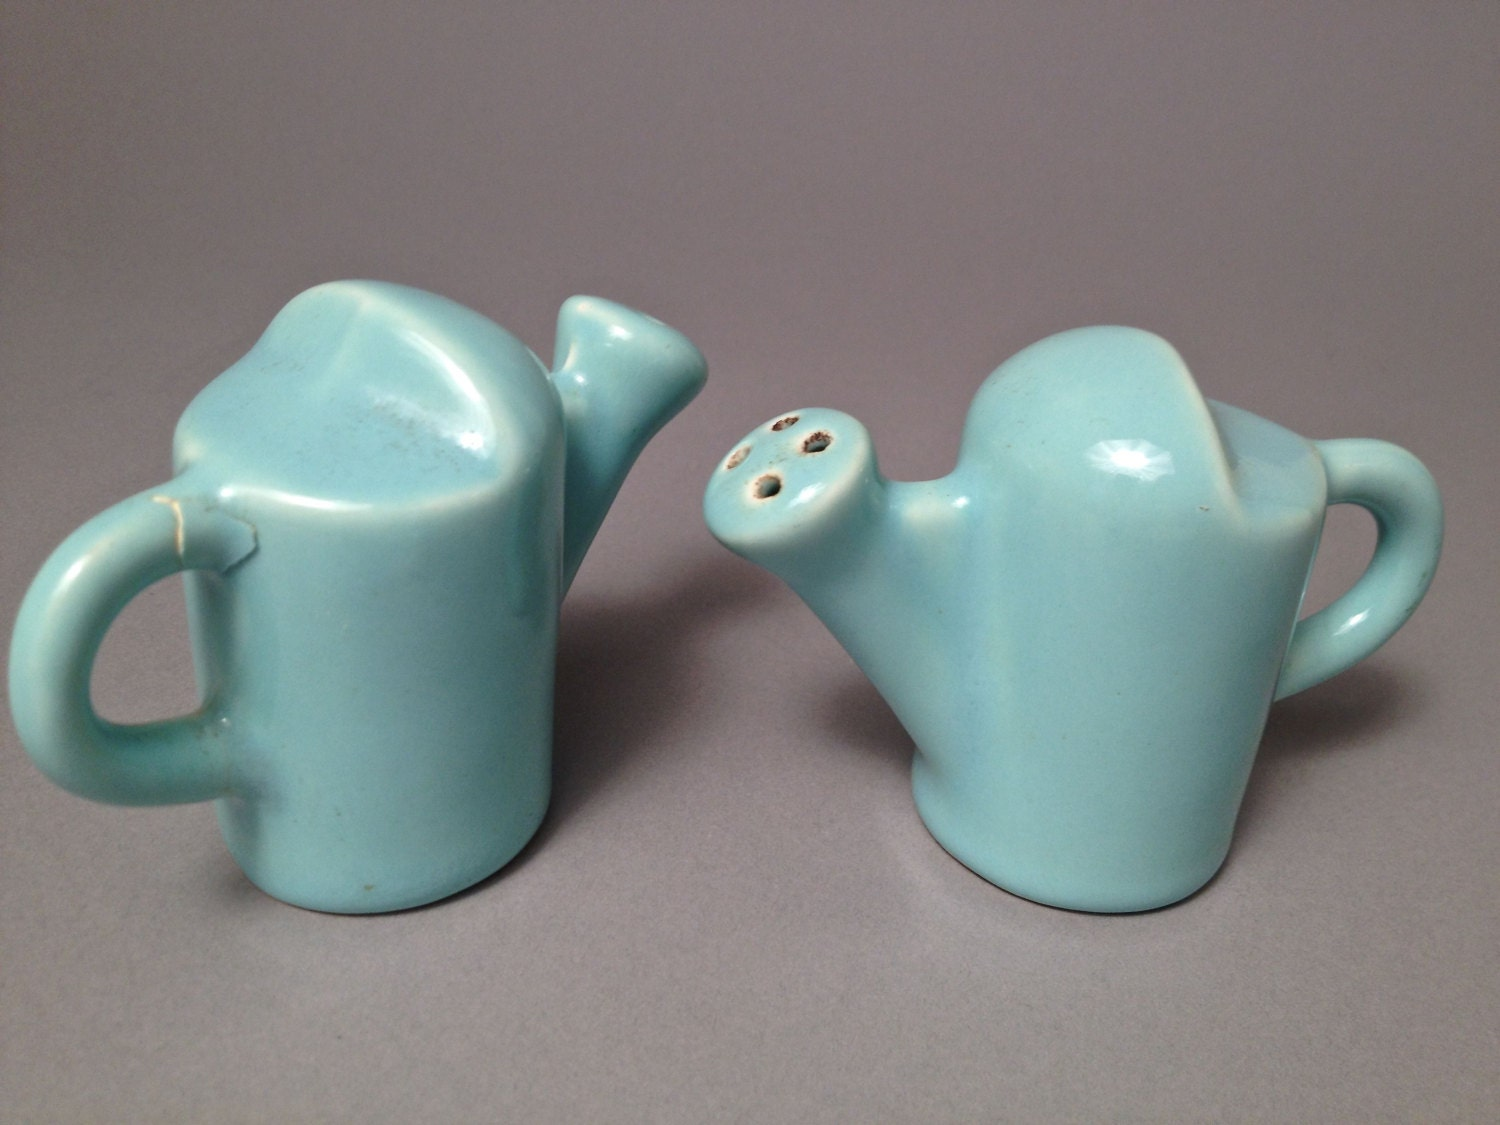 Art Deco Ceramic Salt And Pepper Shaker Set Unique Set One